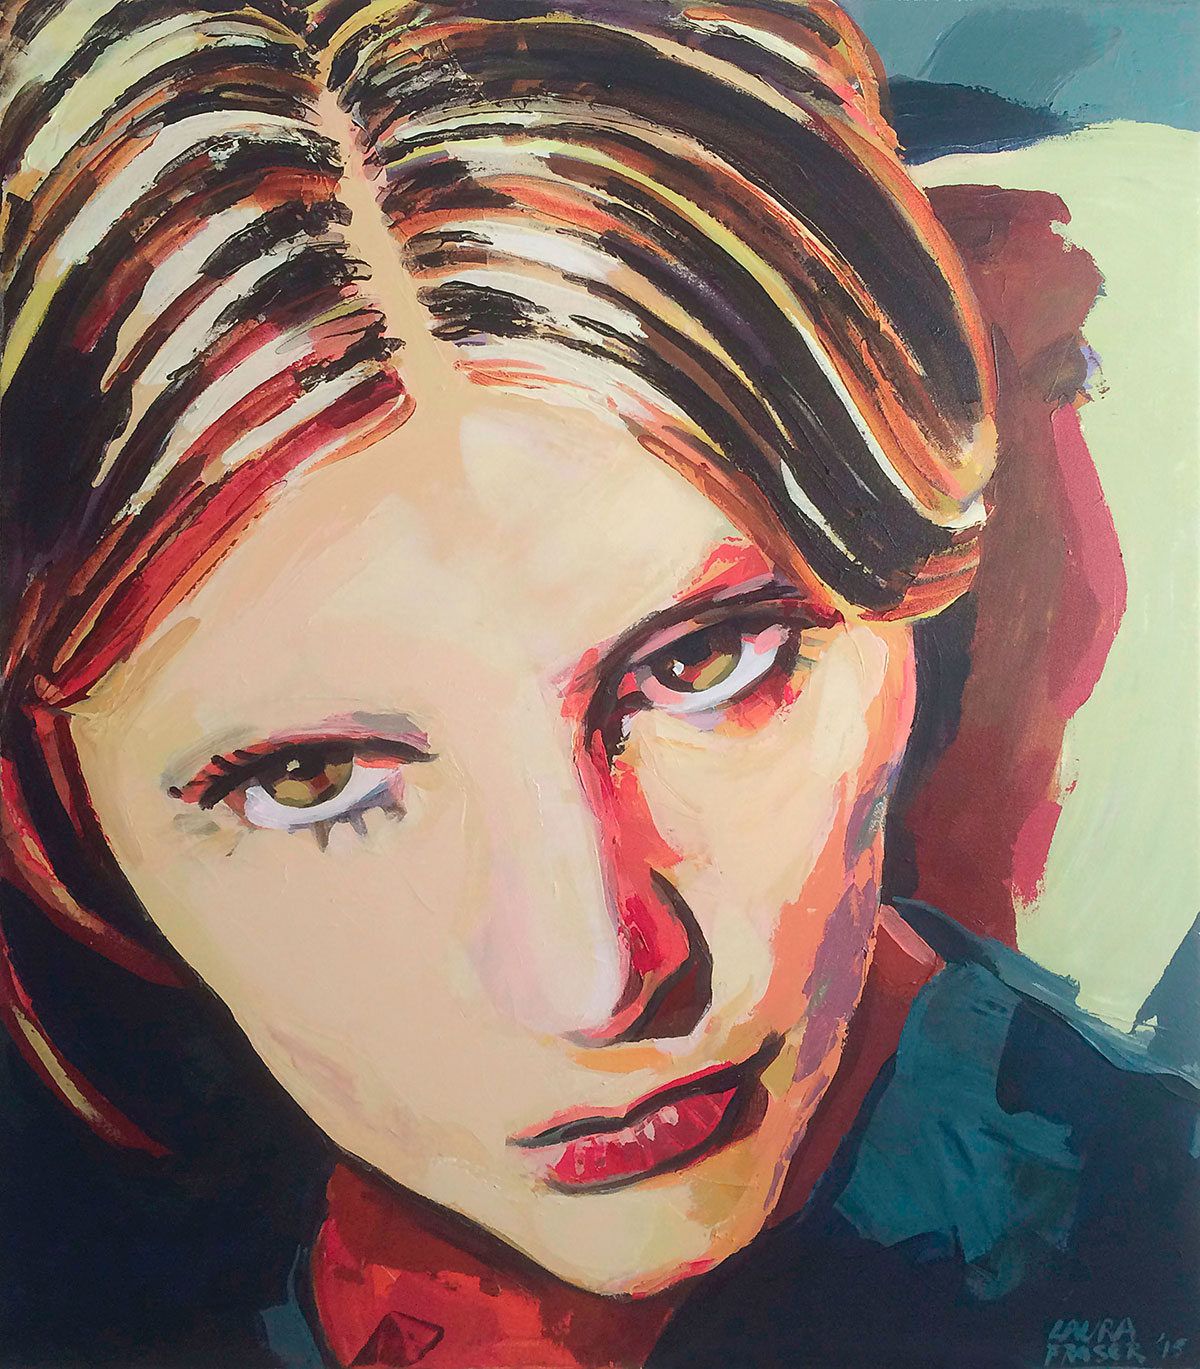 Image of painting of JoJo by Laura Fraser